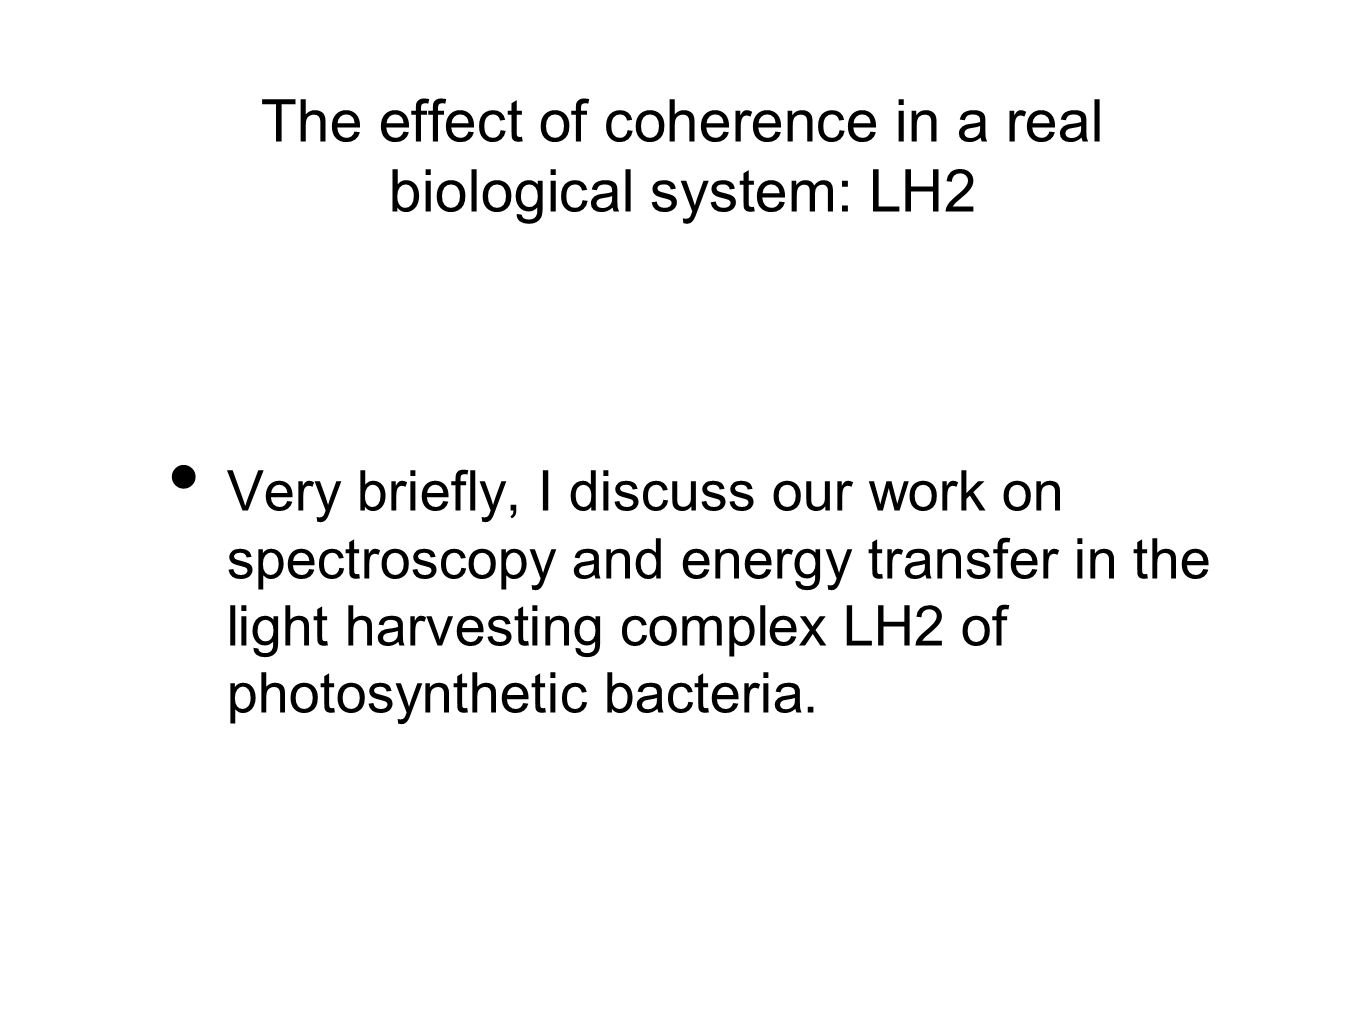 The effect of coherence in a real biological system: LH2 Very briefly, I discuss our work on spectroscopy and energy transfer in the light harvesting complex LH2 of photosynthetic bacteria.